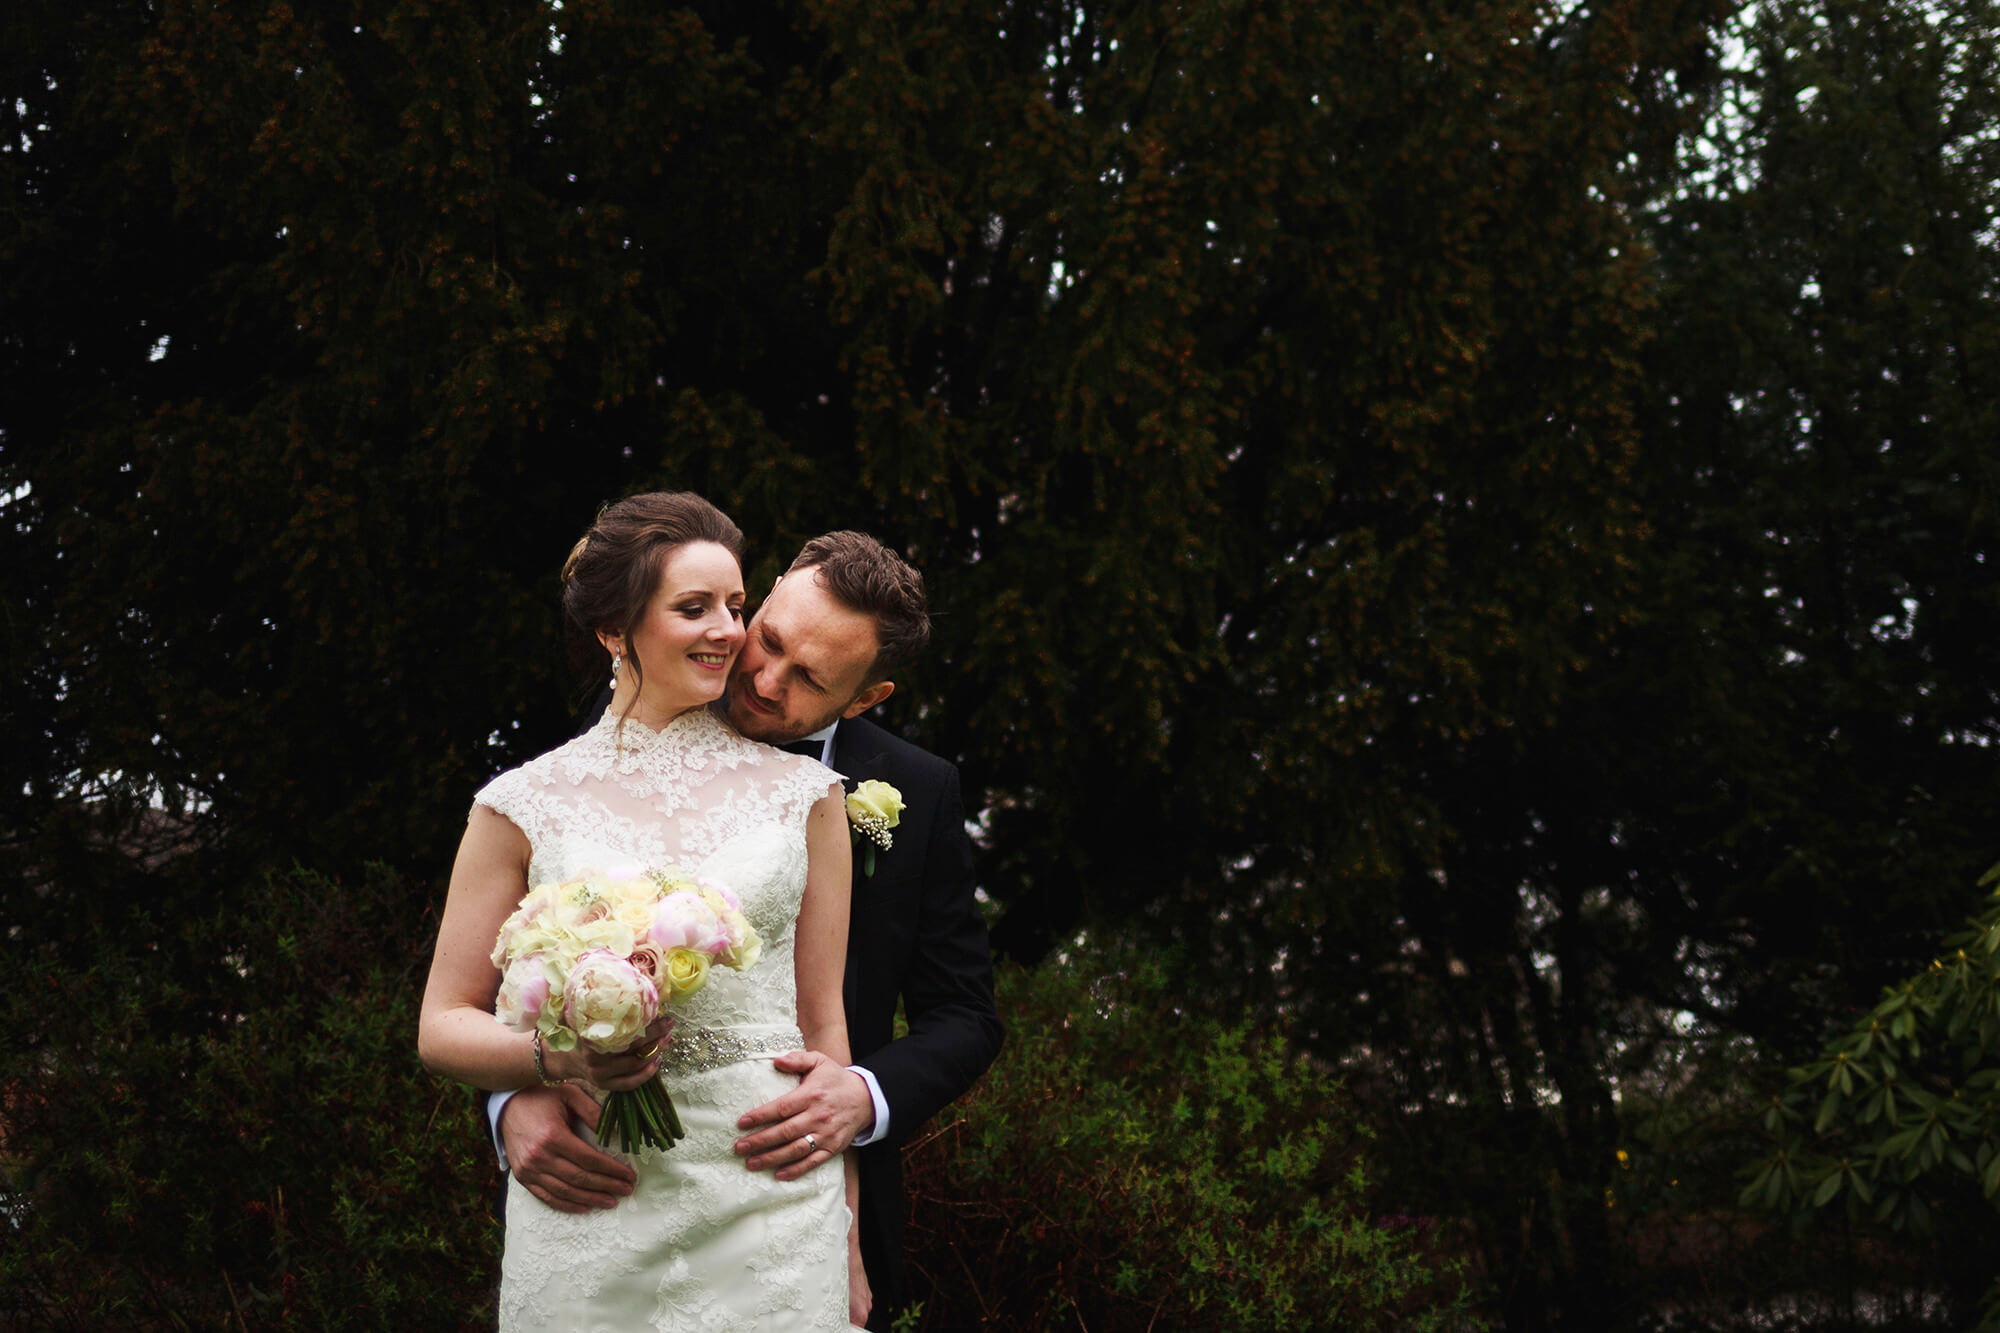 Crabwall Manor Couple Just Married